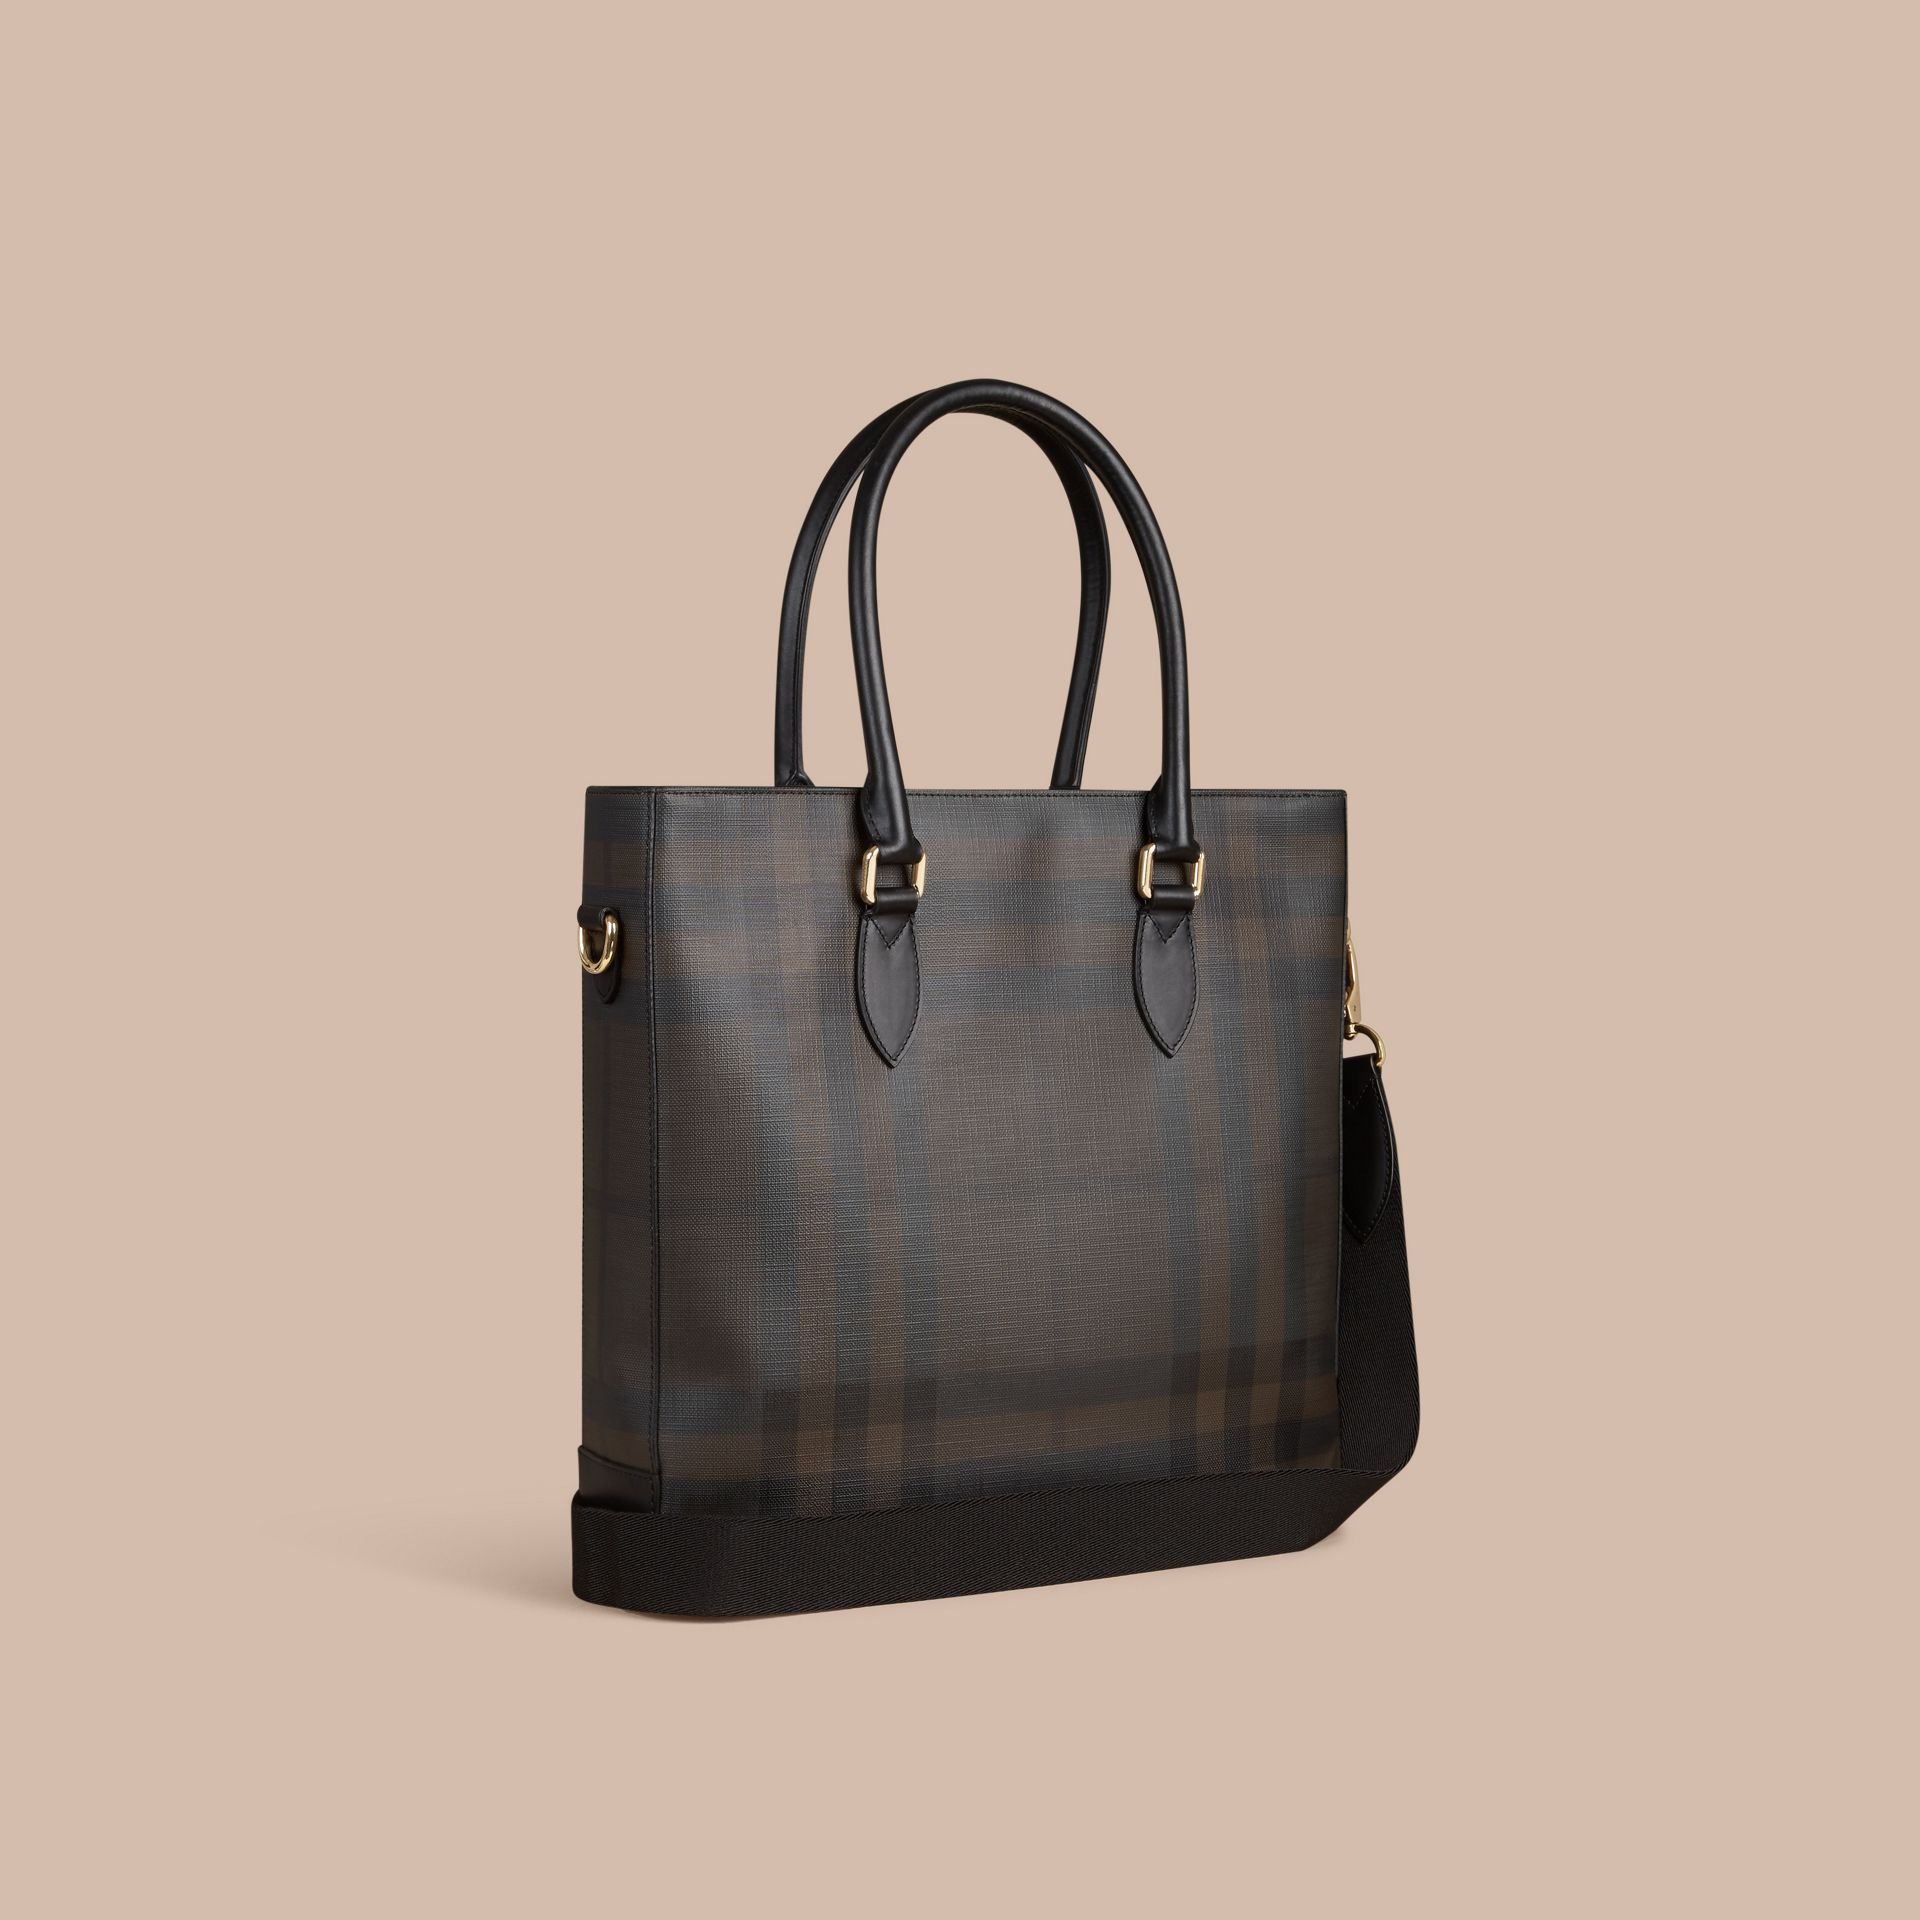 Sac tote à motif London check (Noir/chocolat) - Homme | Burberry - photo de la galerie 1